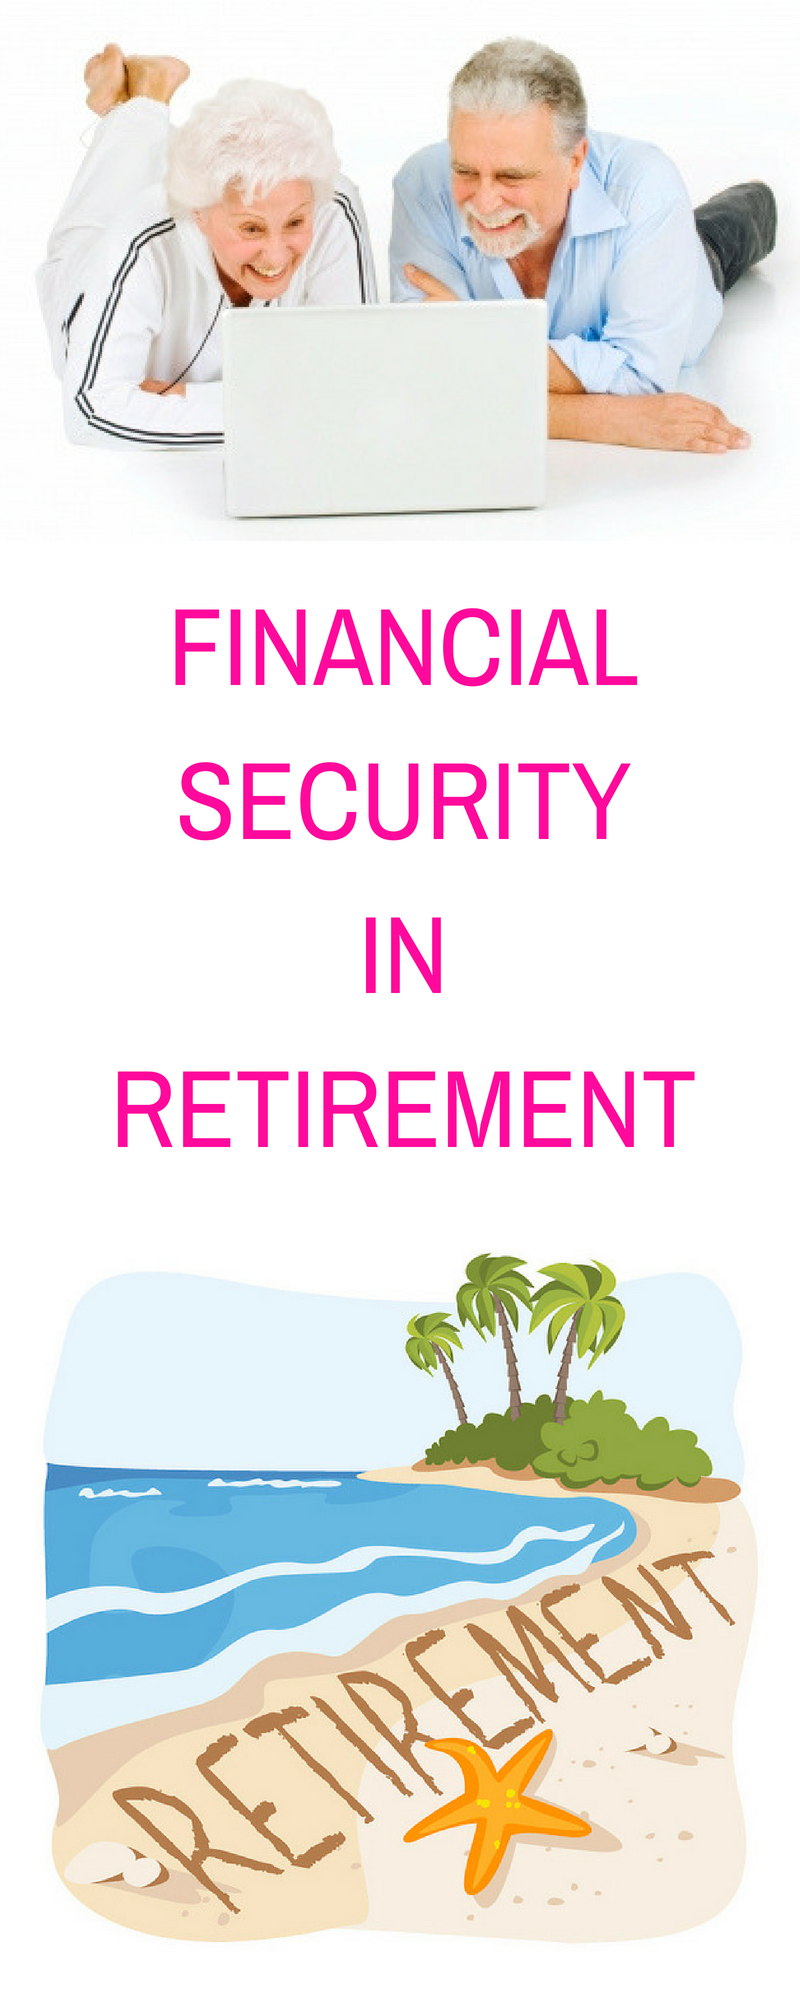 retirement investments Stay financially secure in your